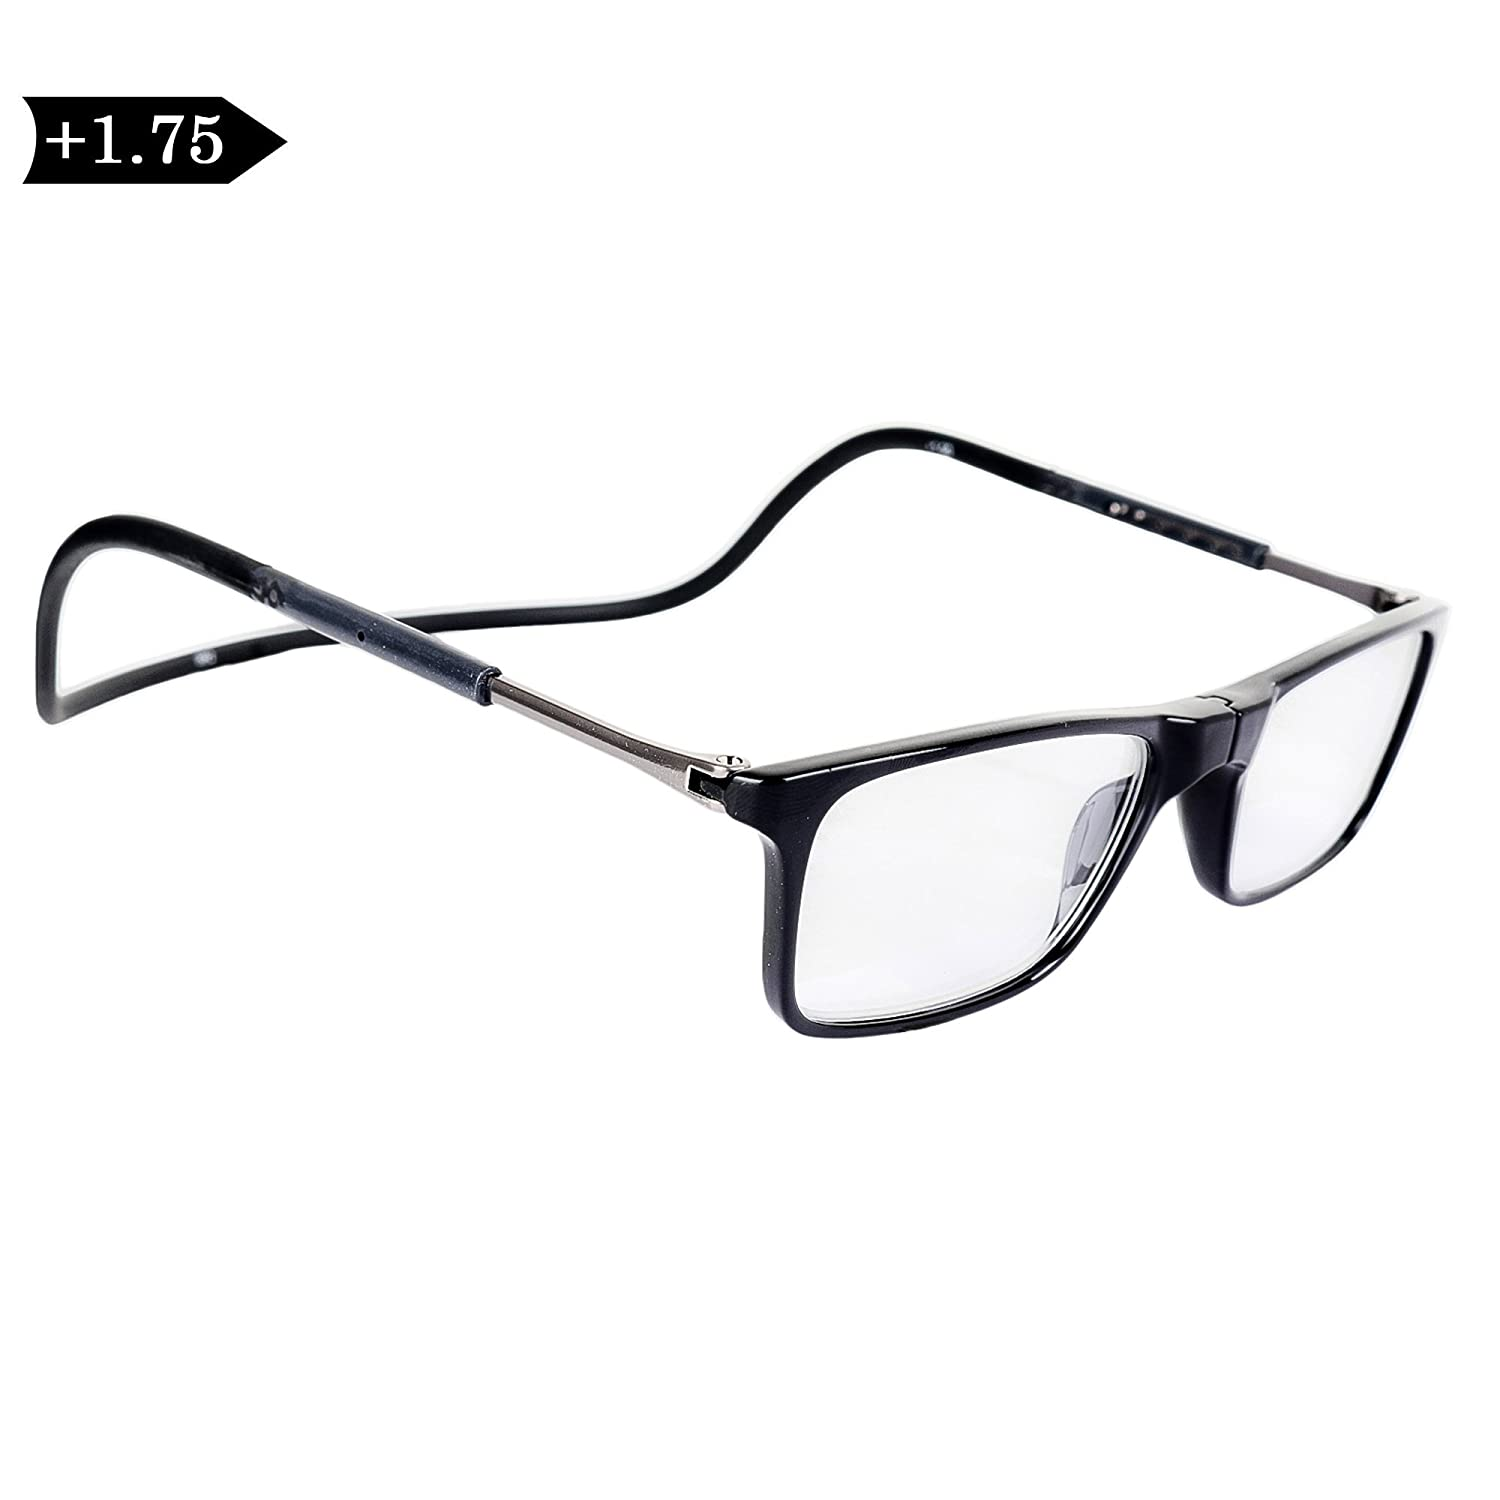 827847800958 IRYZ EYEWEAR Unisex Reading Glasses (Black)- Magneto c1 (1.75 Diopters)   Amazon.in  Health   Personal Care